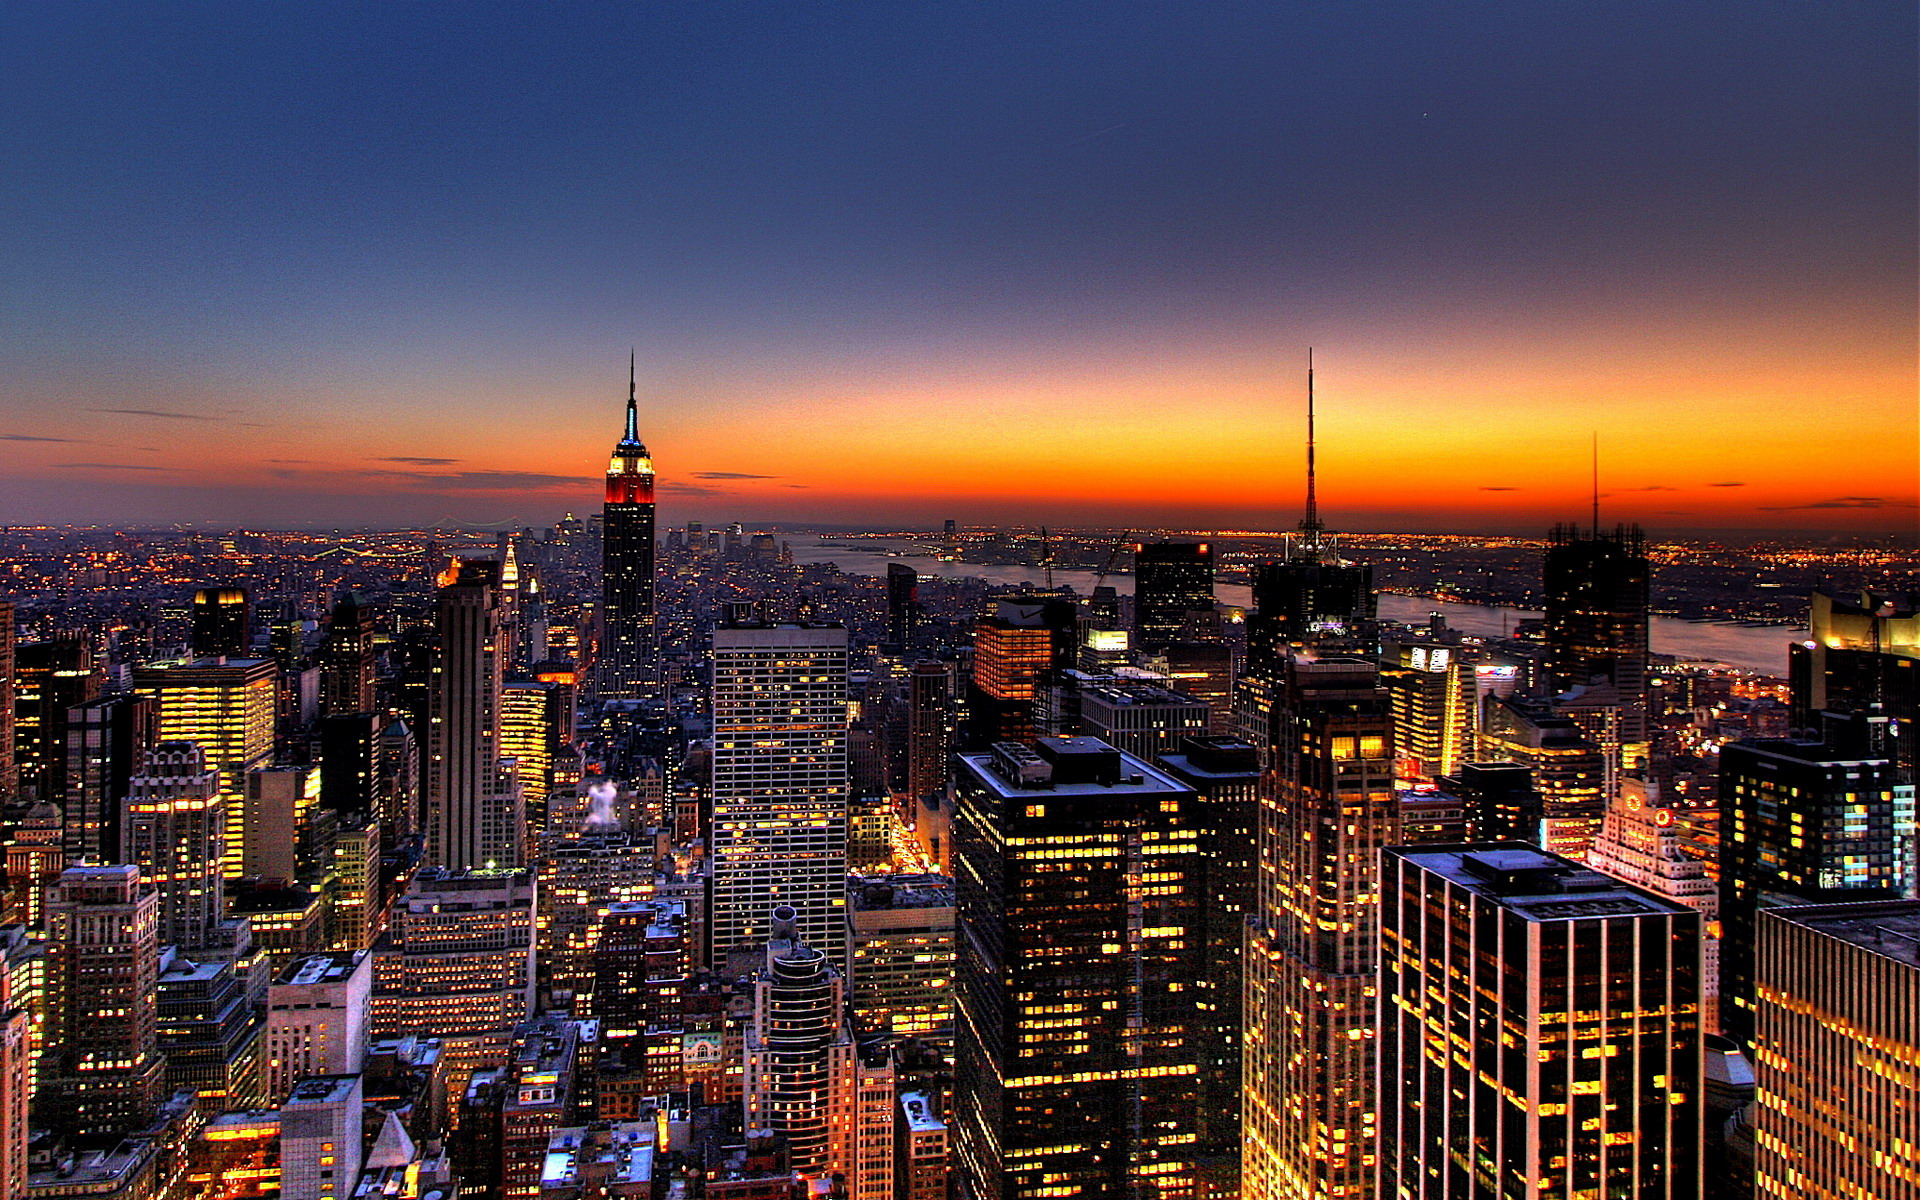 Cool Skyline Wallpaper 29337 1920x1080 px